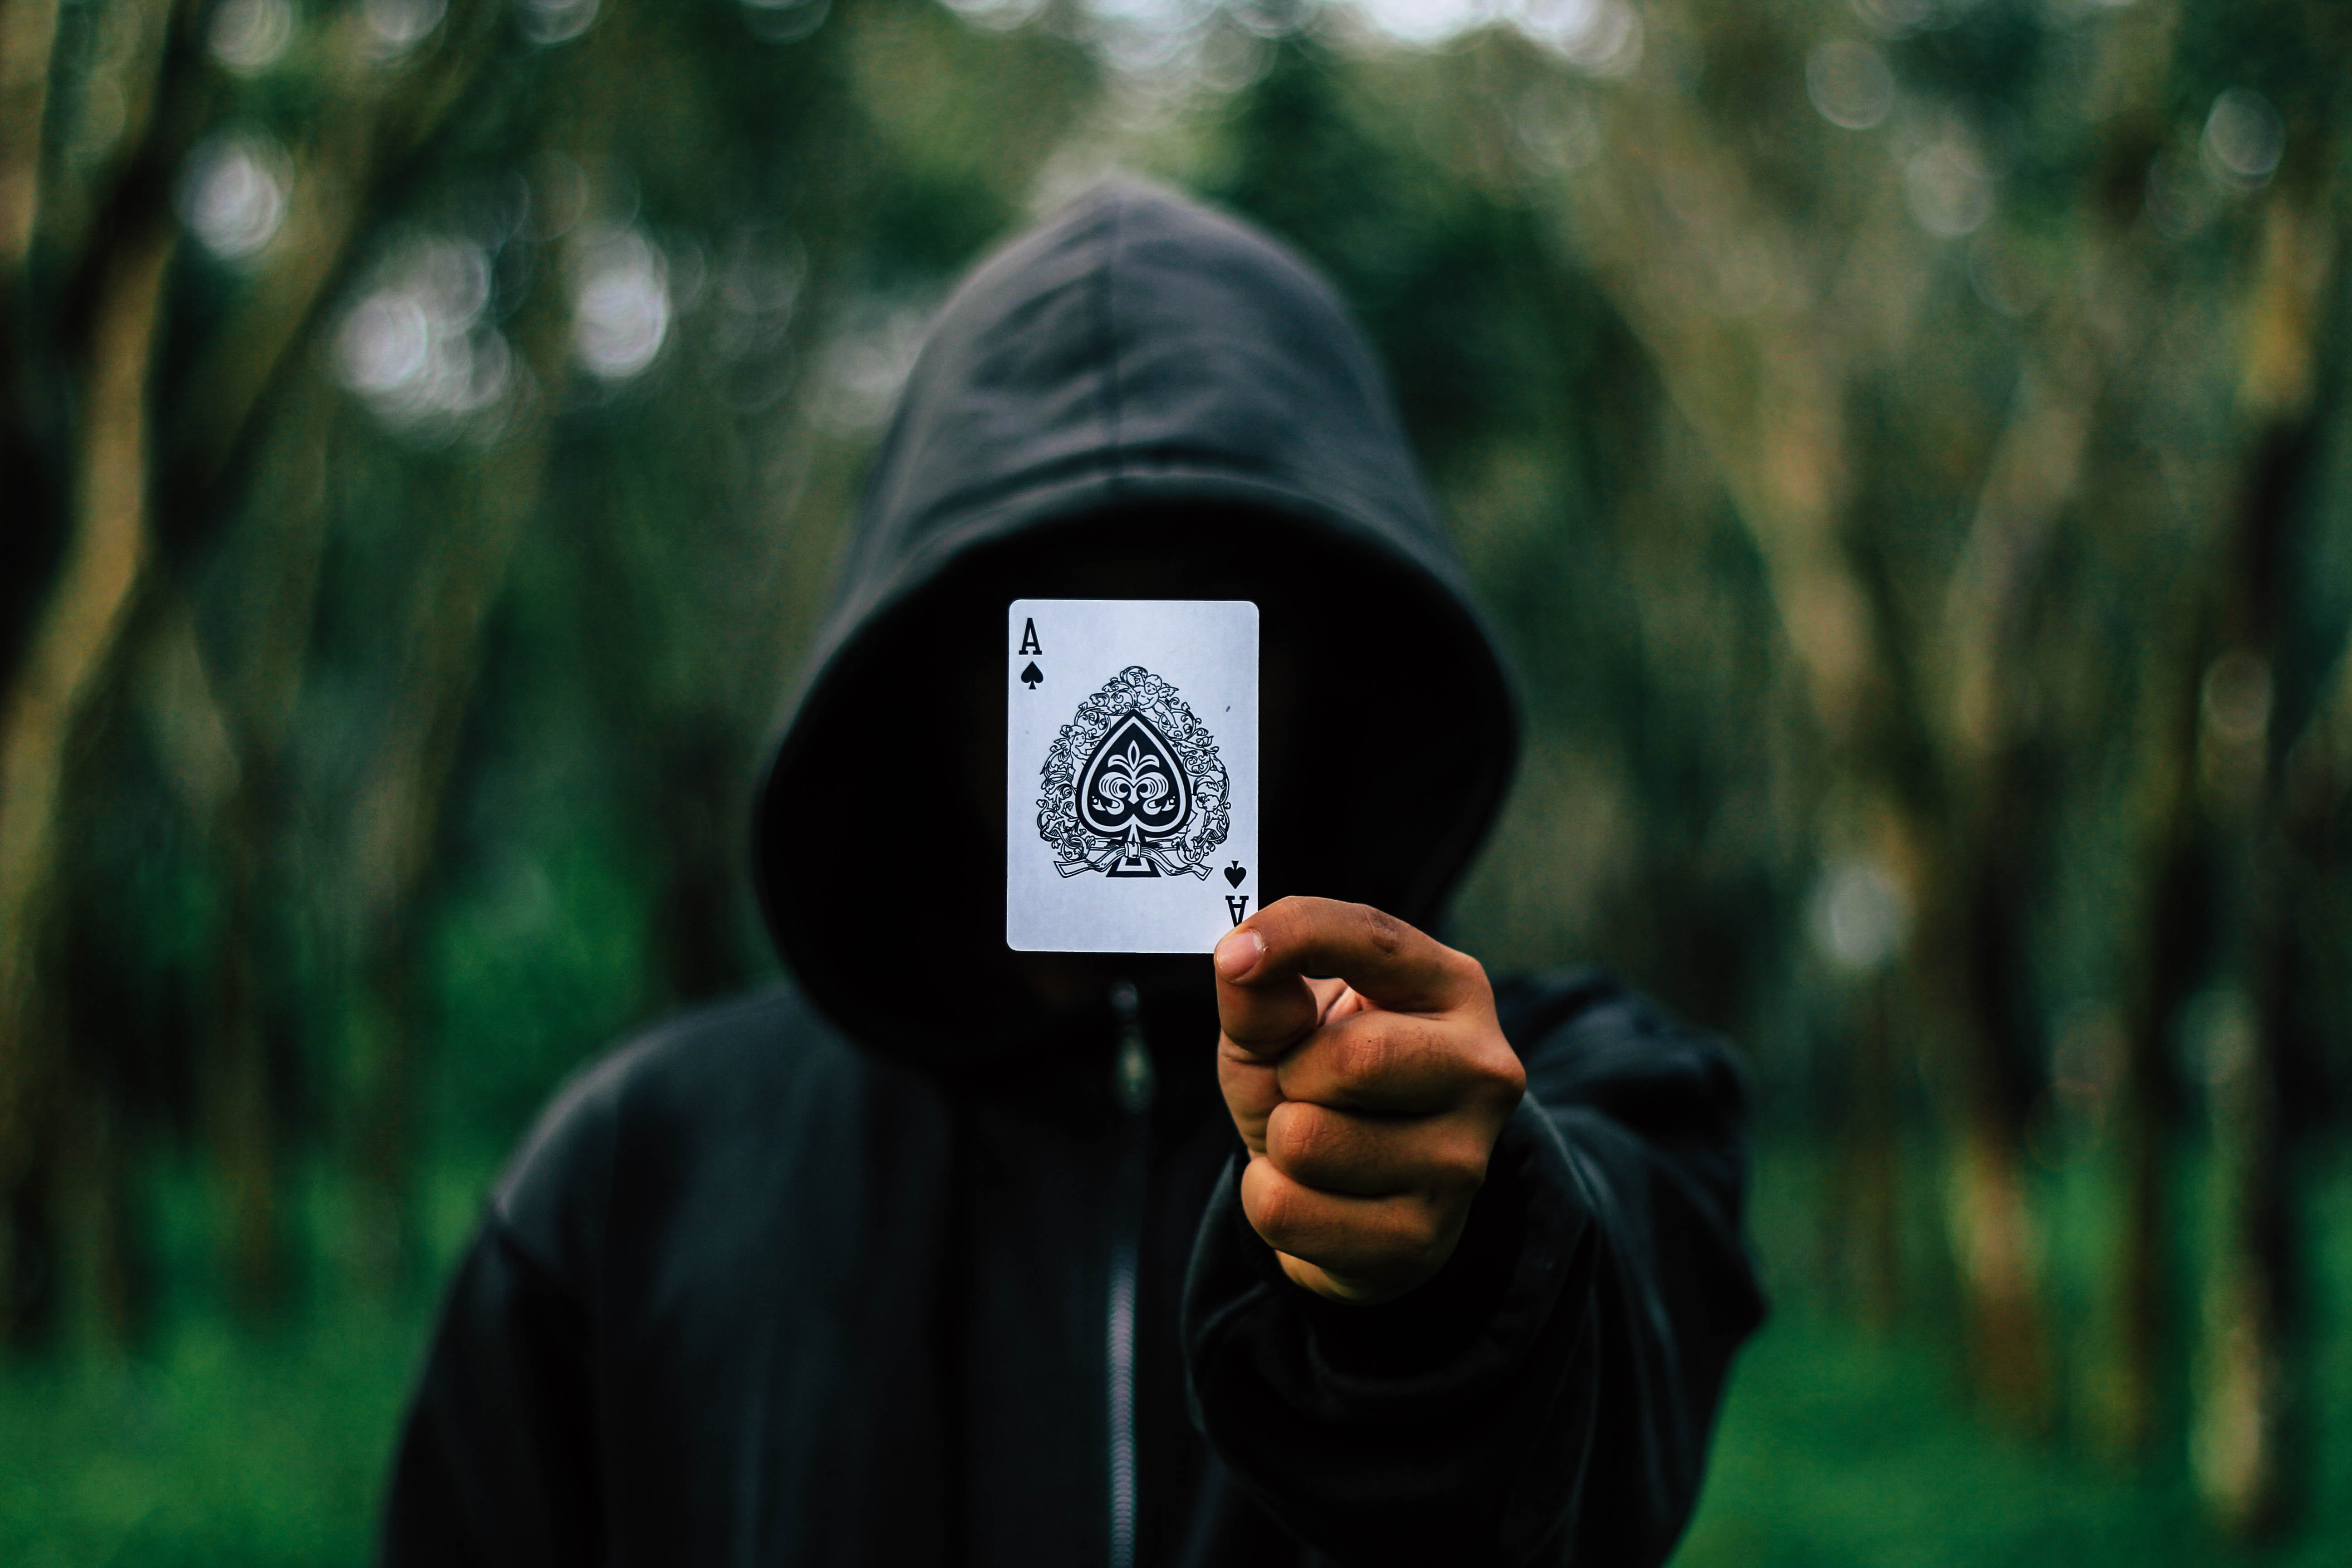 man holding Ace of Spade card